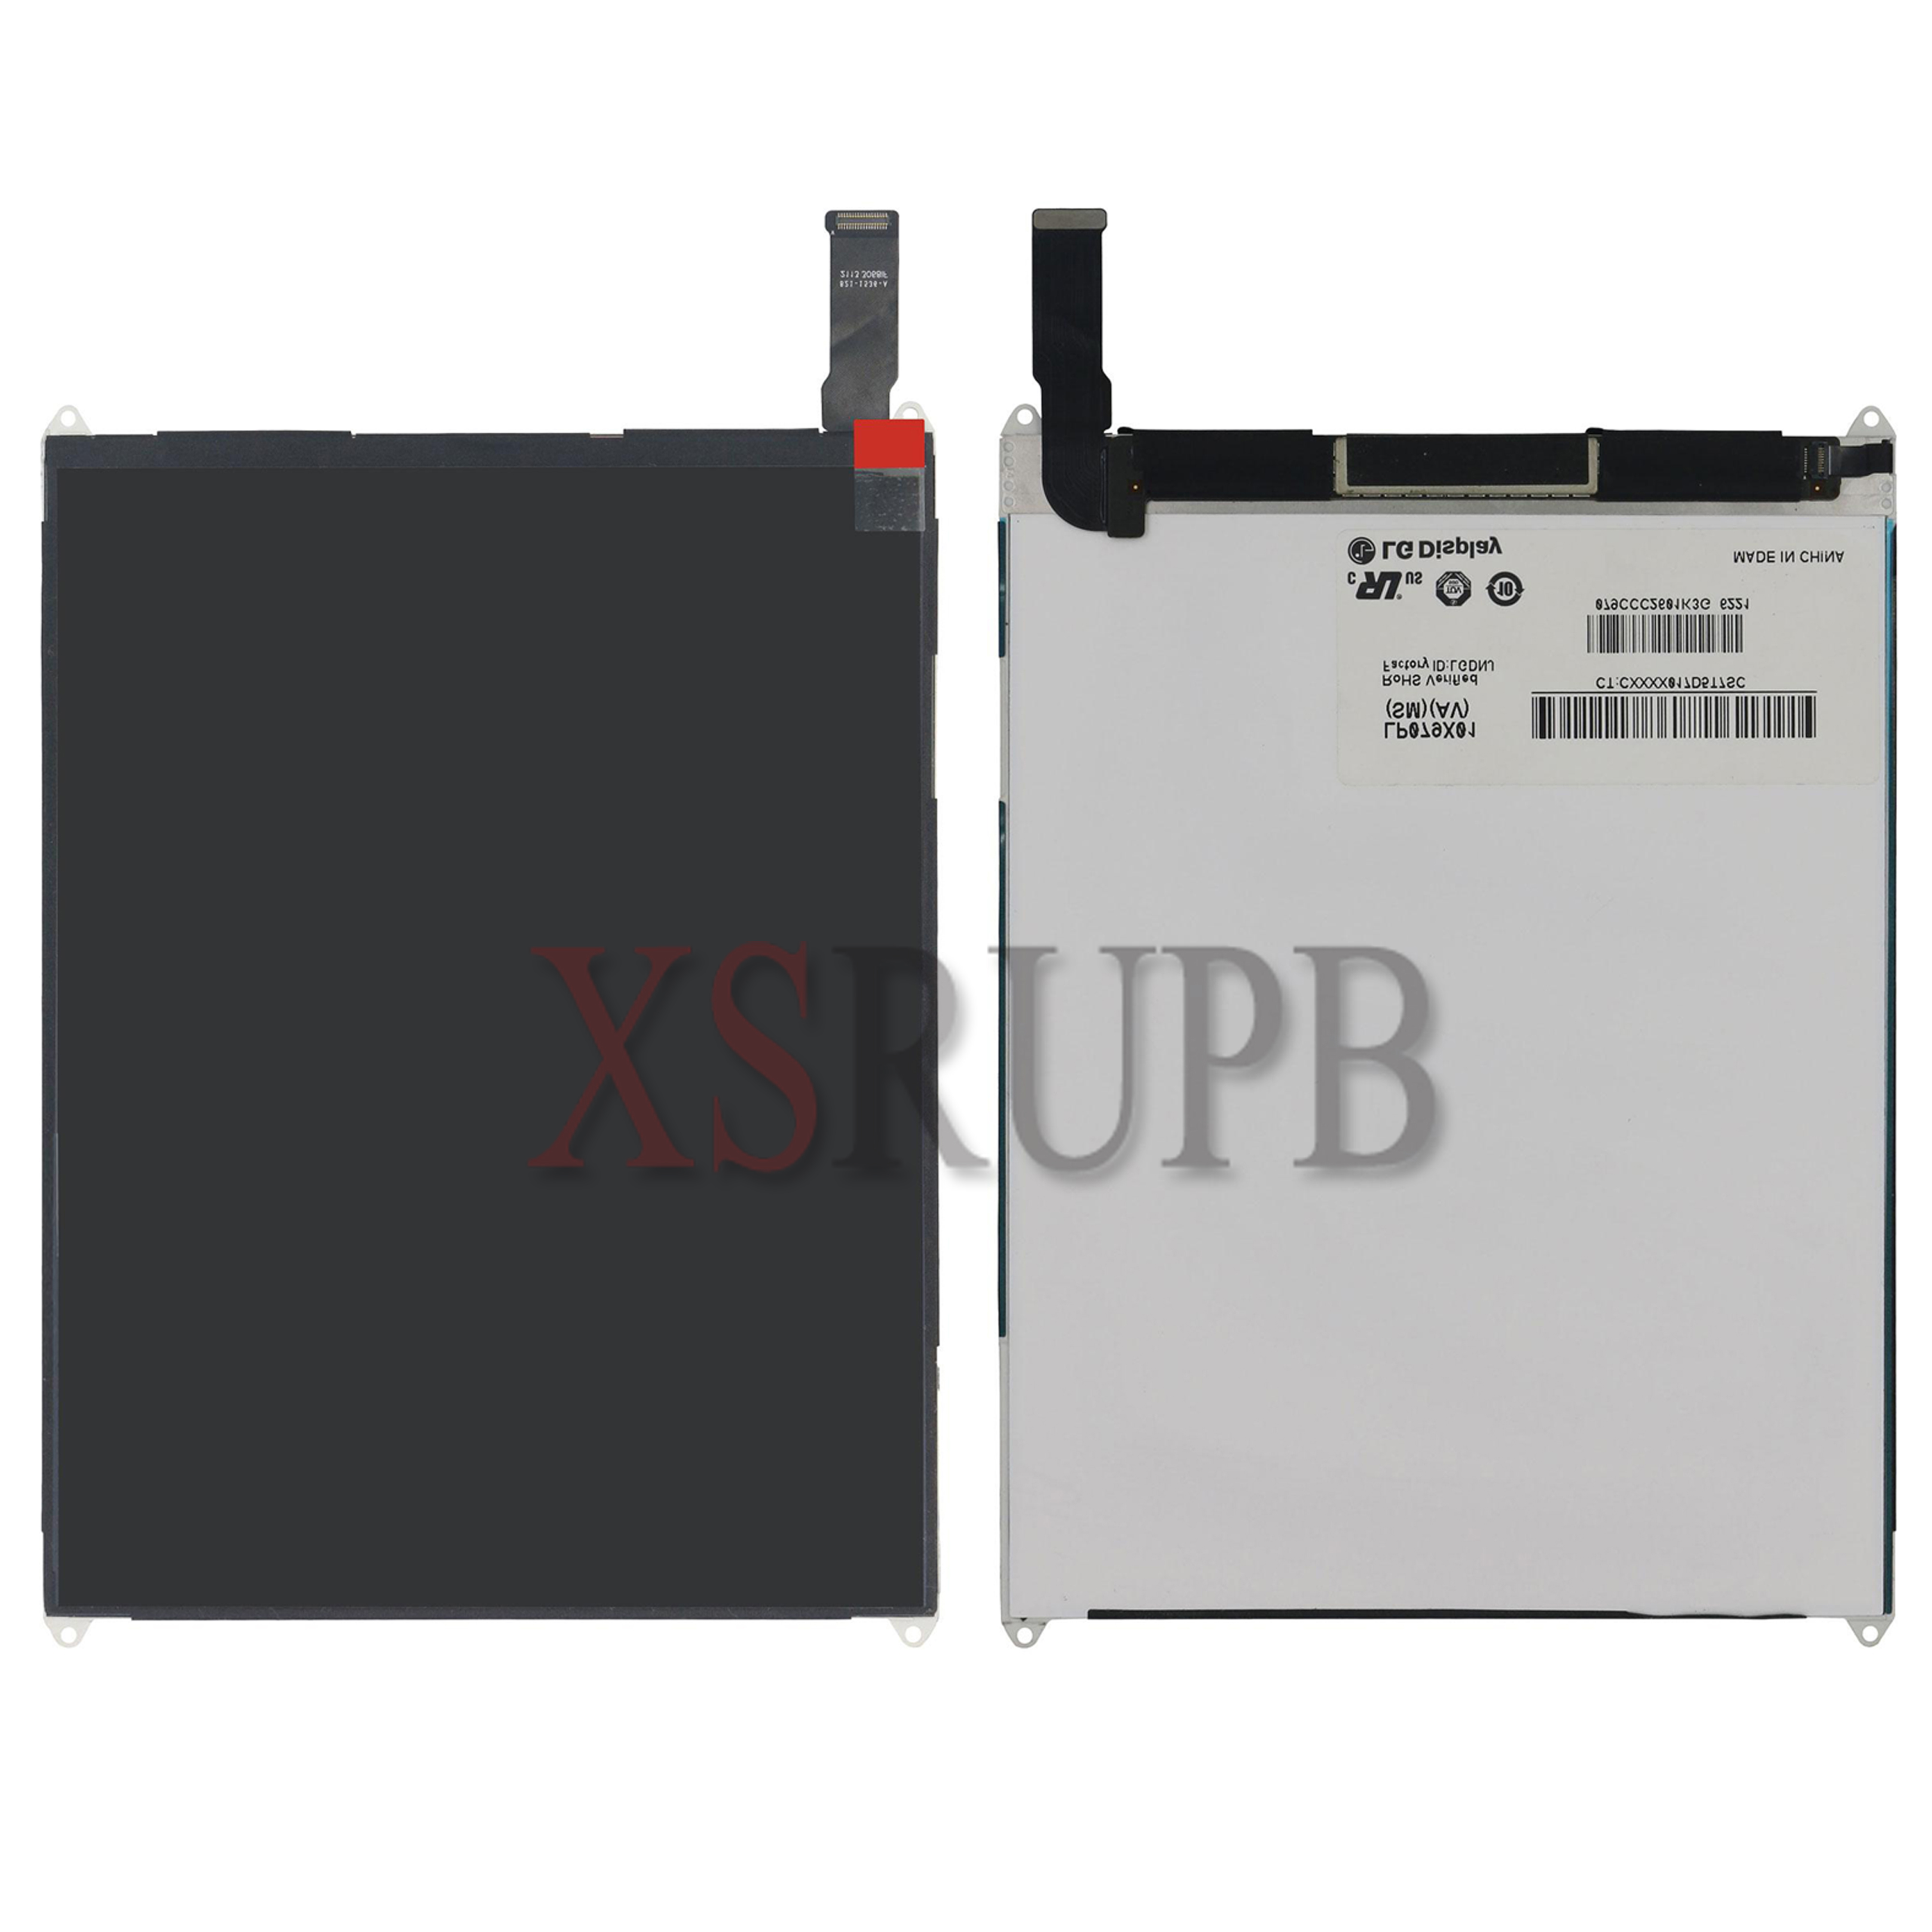 Free shipping 7.9 inch IPS LCD 069-8634-A For TECLAST P88S mini ,Ramos X10 Tablet Display screen,cable 821-1536-04(1024*768)